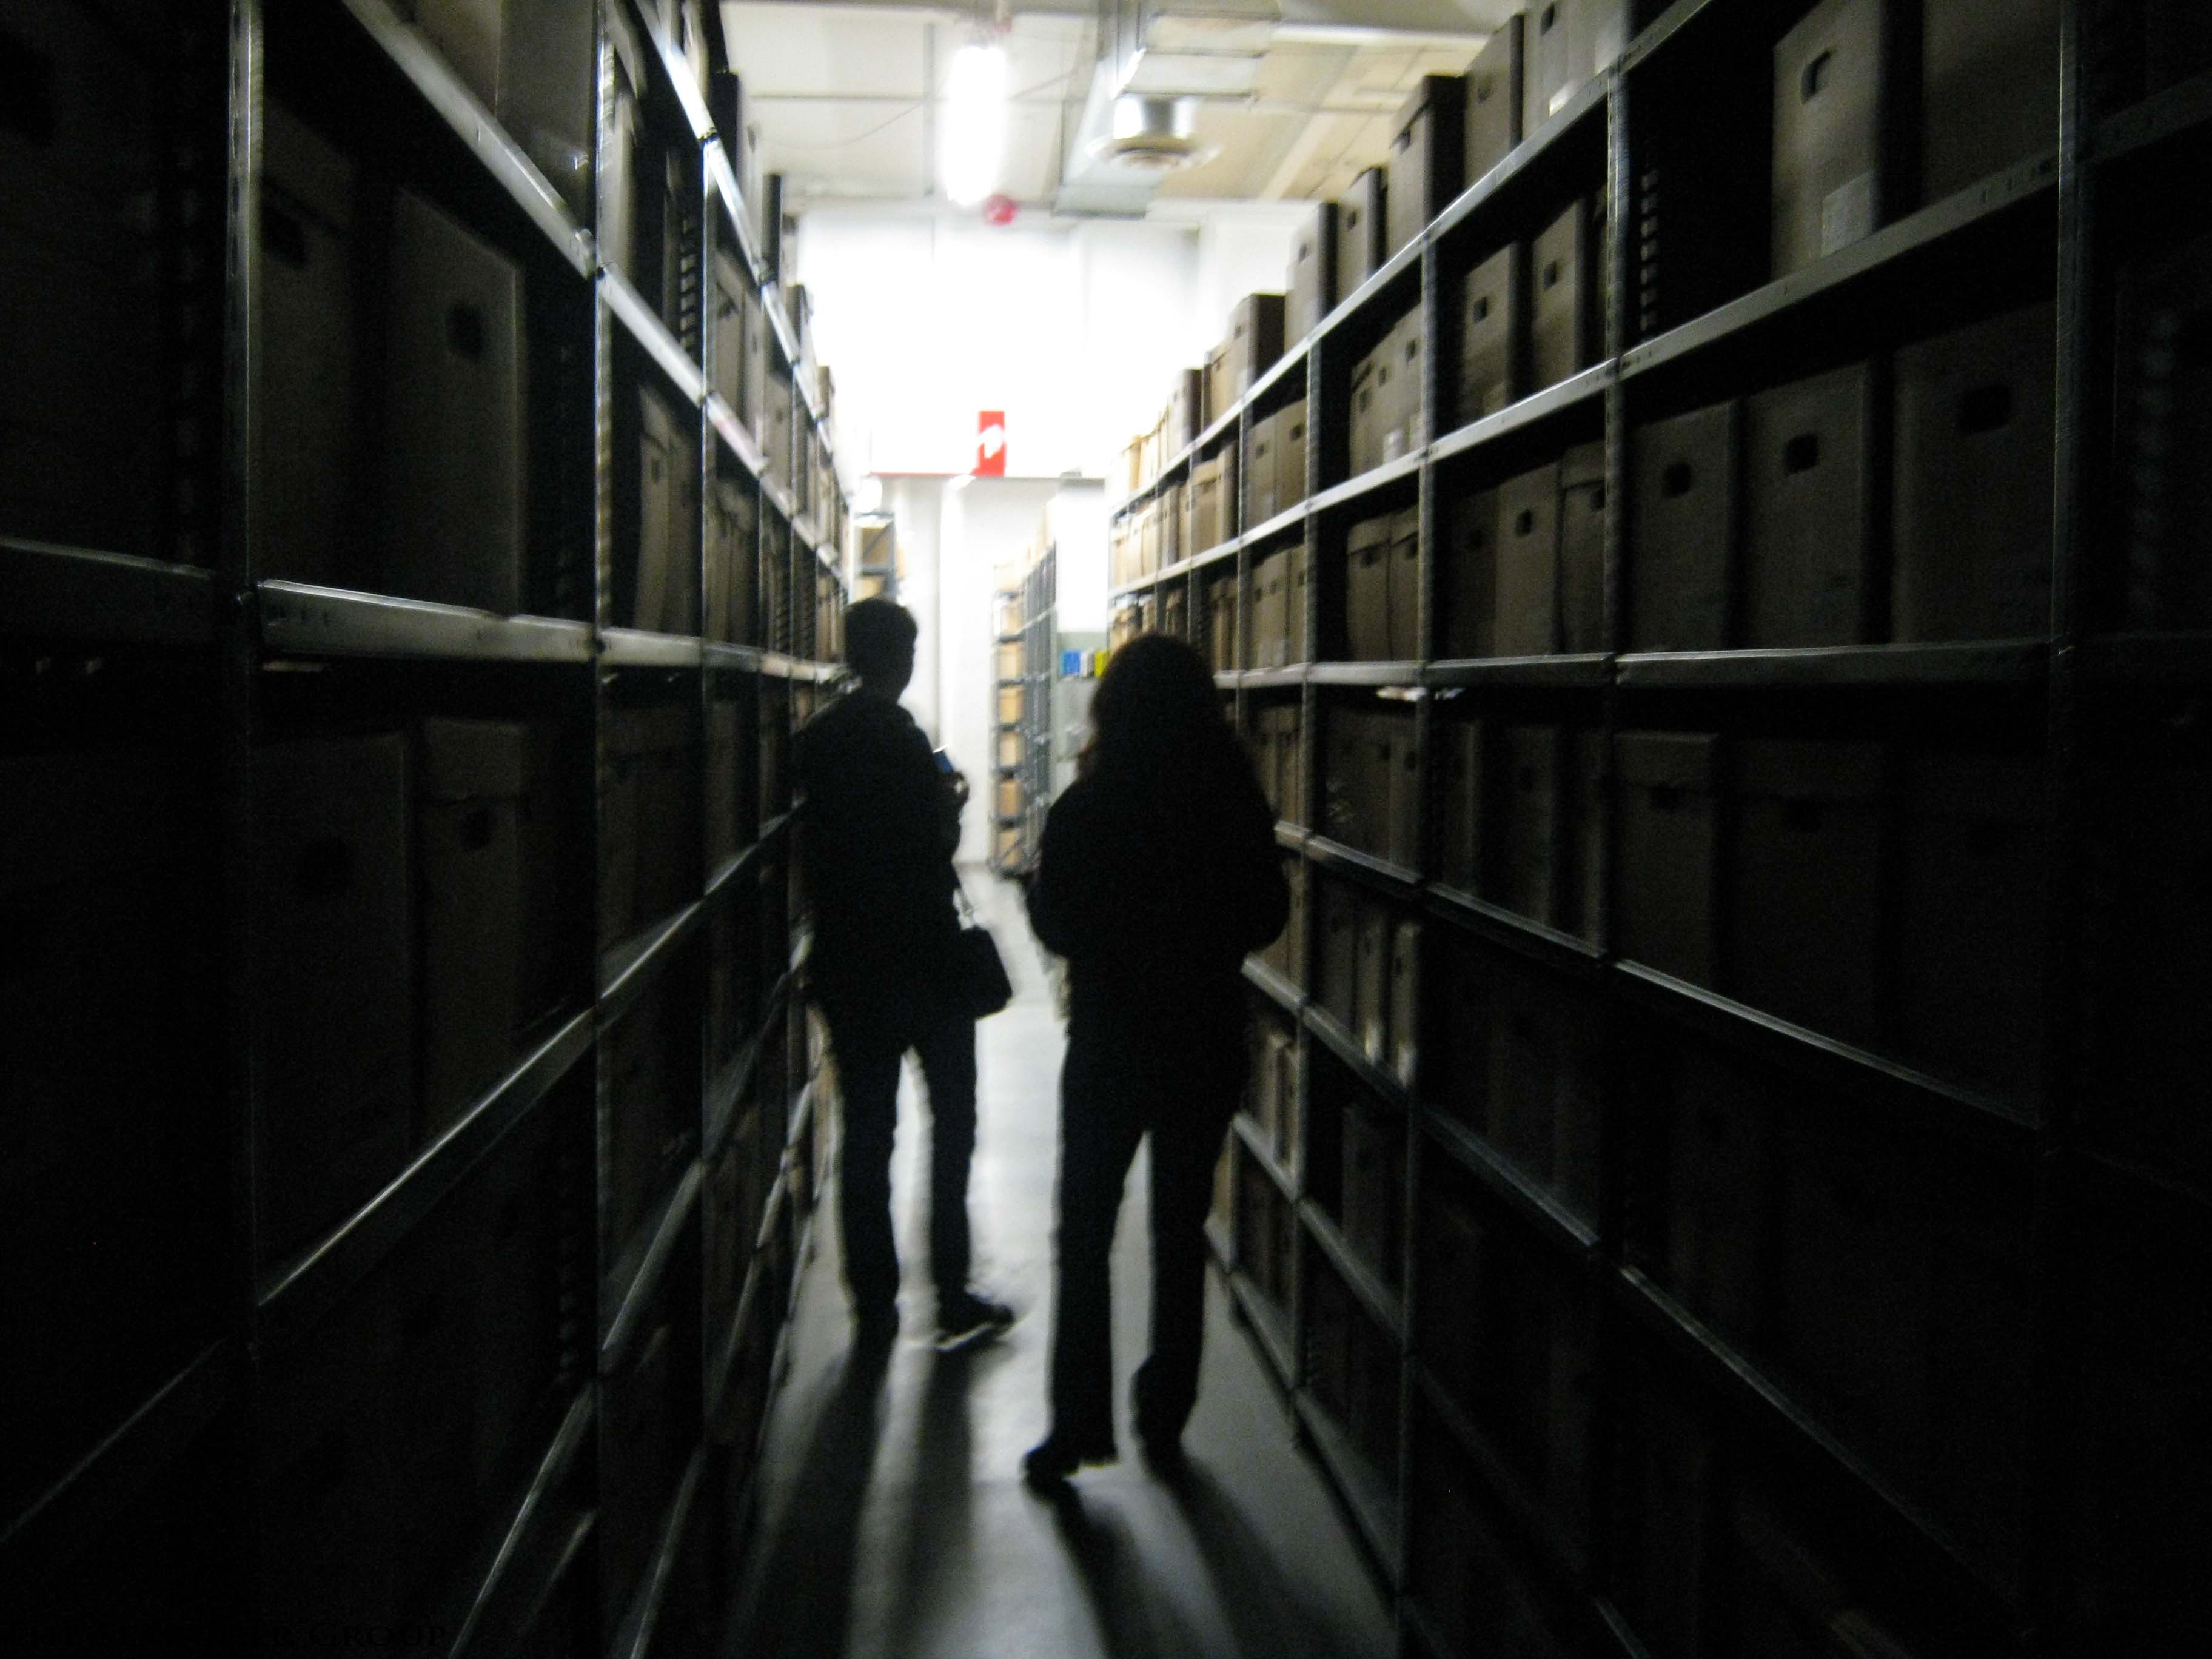 photo of two The Searcher Group team members Investigating the CNE Archives walking through the aisle with shelves of boxes on either side